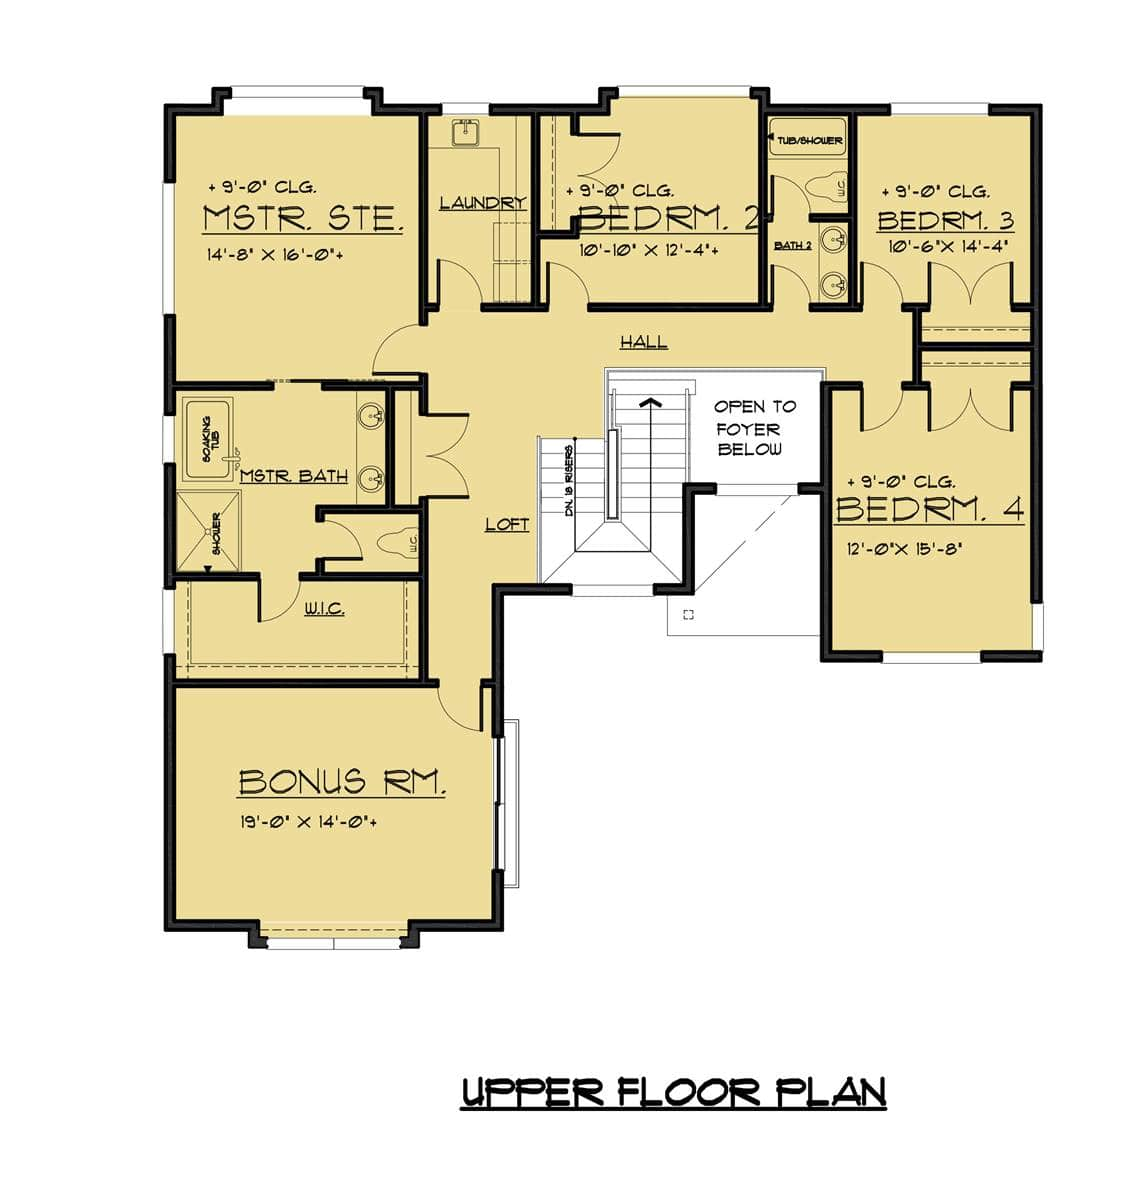 Second level floor plan with a large bonus room and four bedrooms including the primary suite.